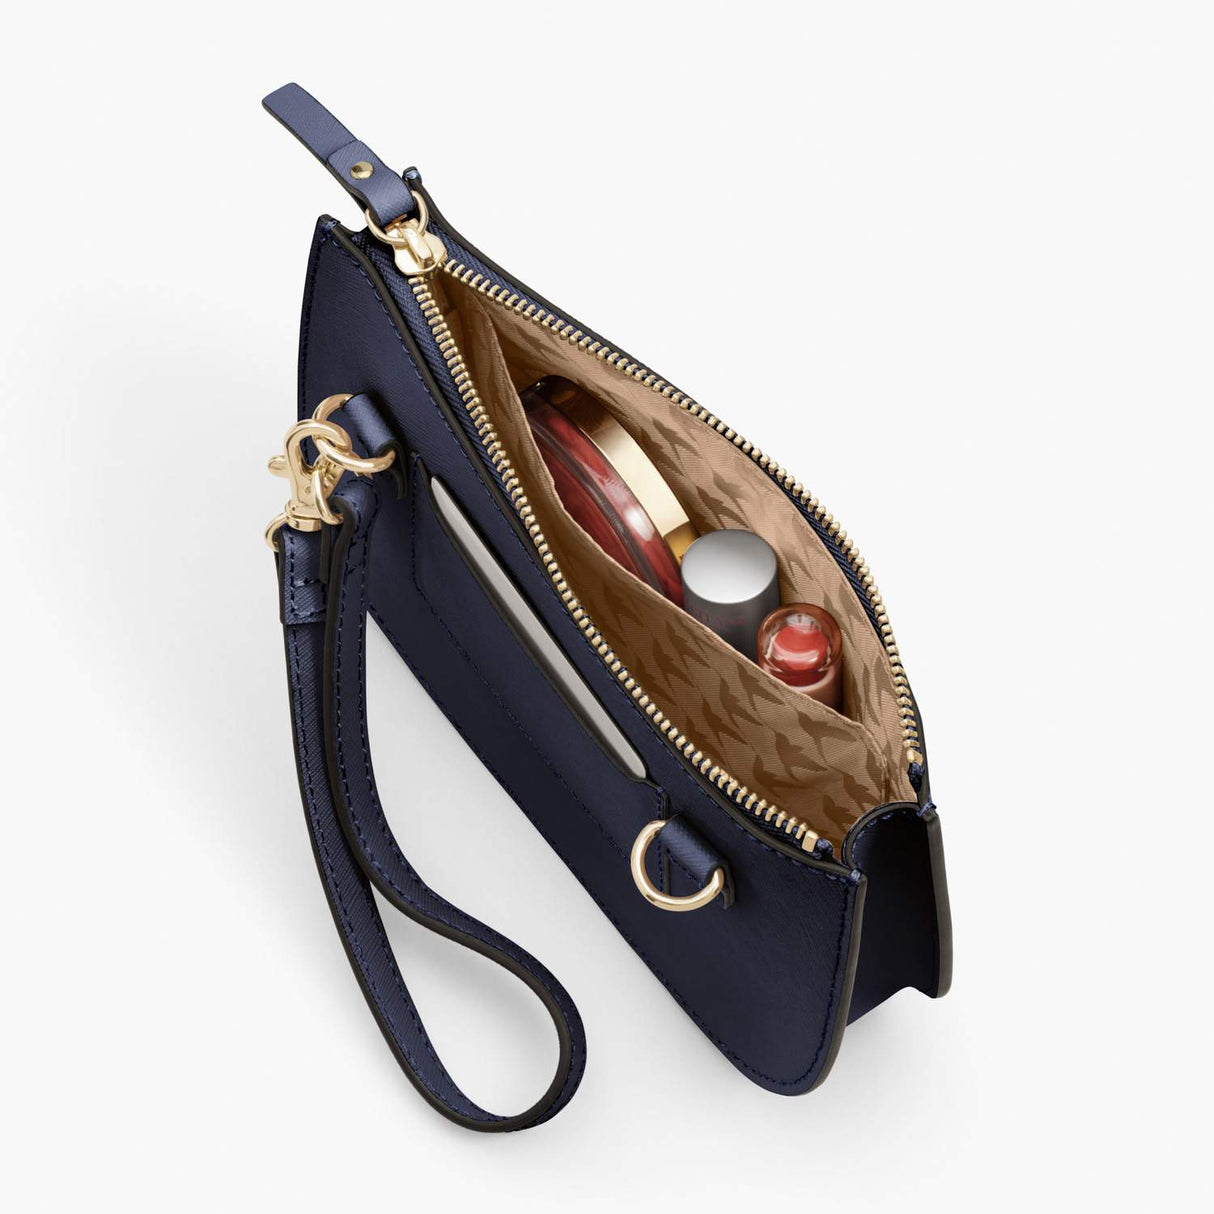 Interior Pocket - Waverley 2 - Saffiano Leather - Deep Navy / Gold / Camel - Crossbody Bag - Lo & Sons